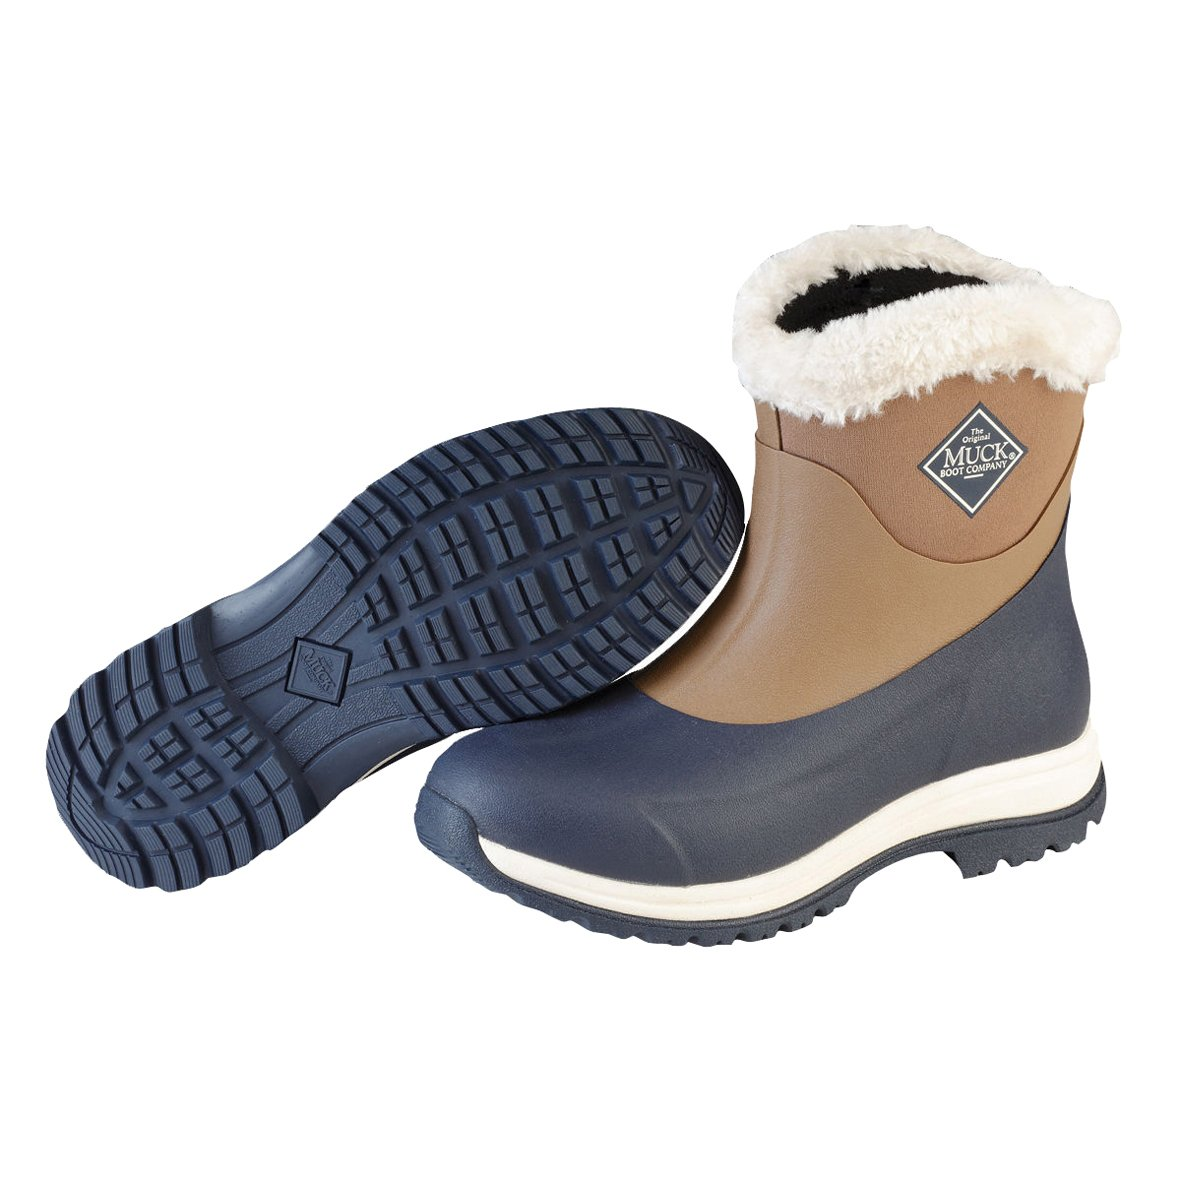 Muck Boot Women's Arctic Apres Slip-on, Otter, Navy/Fog, 8 M US